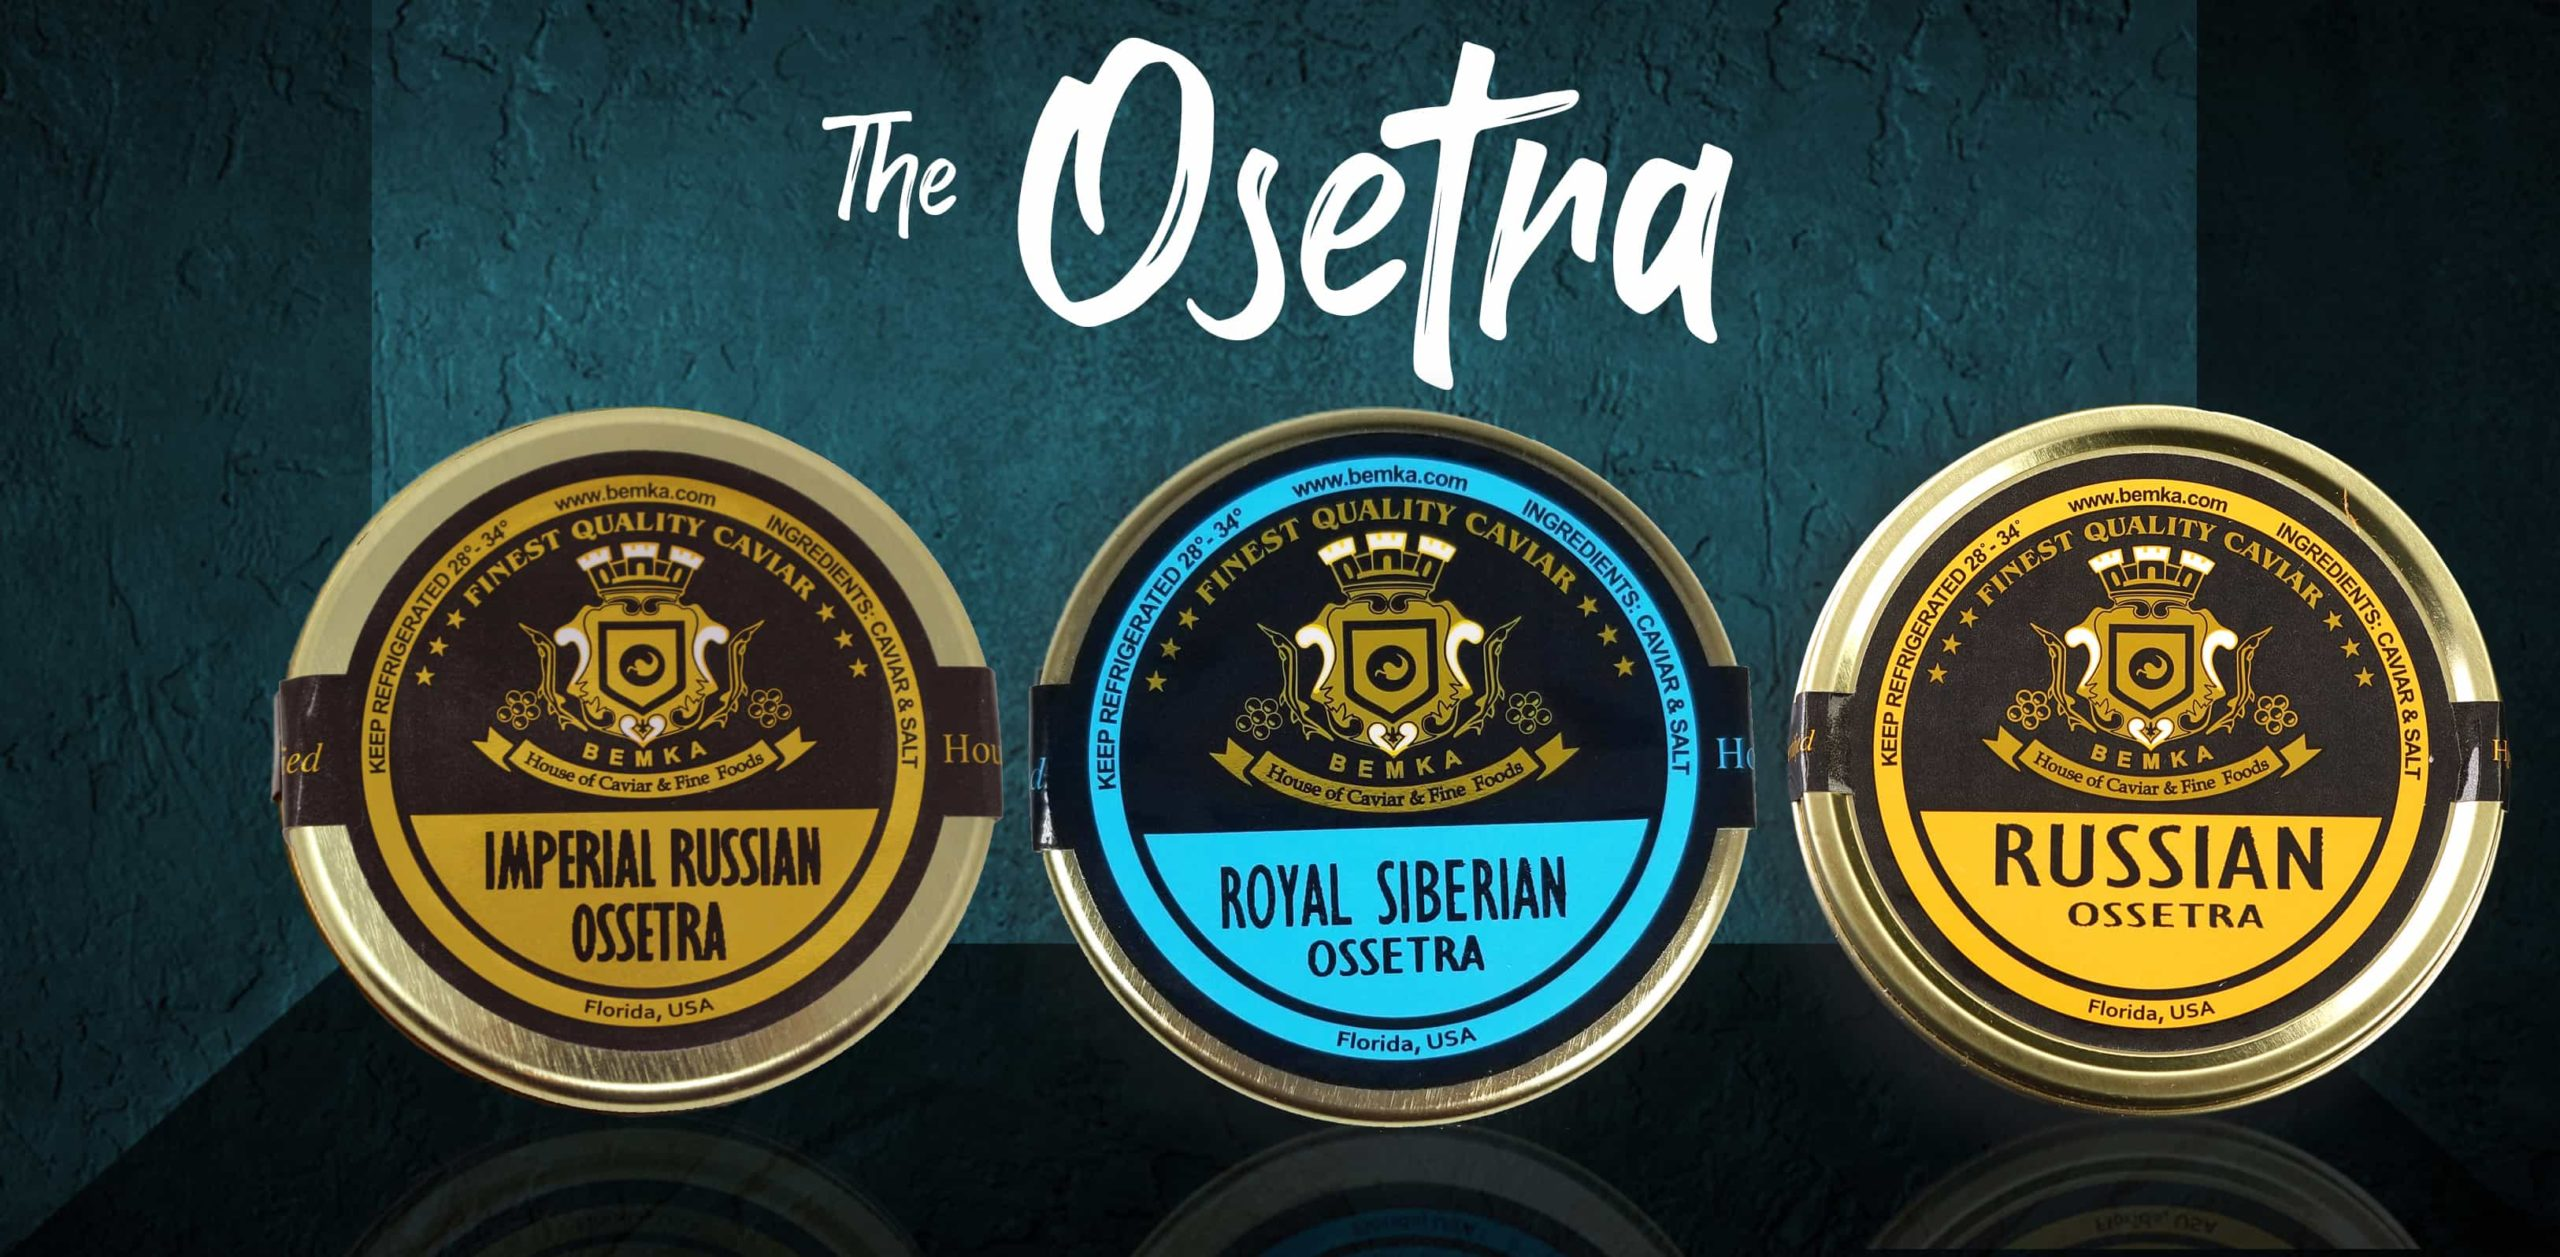 The ultimate guide about Osetra Caviar COVER scaled - Caviar Lover